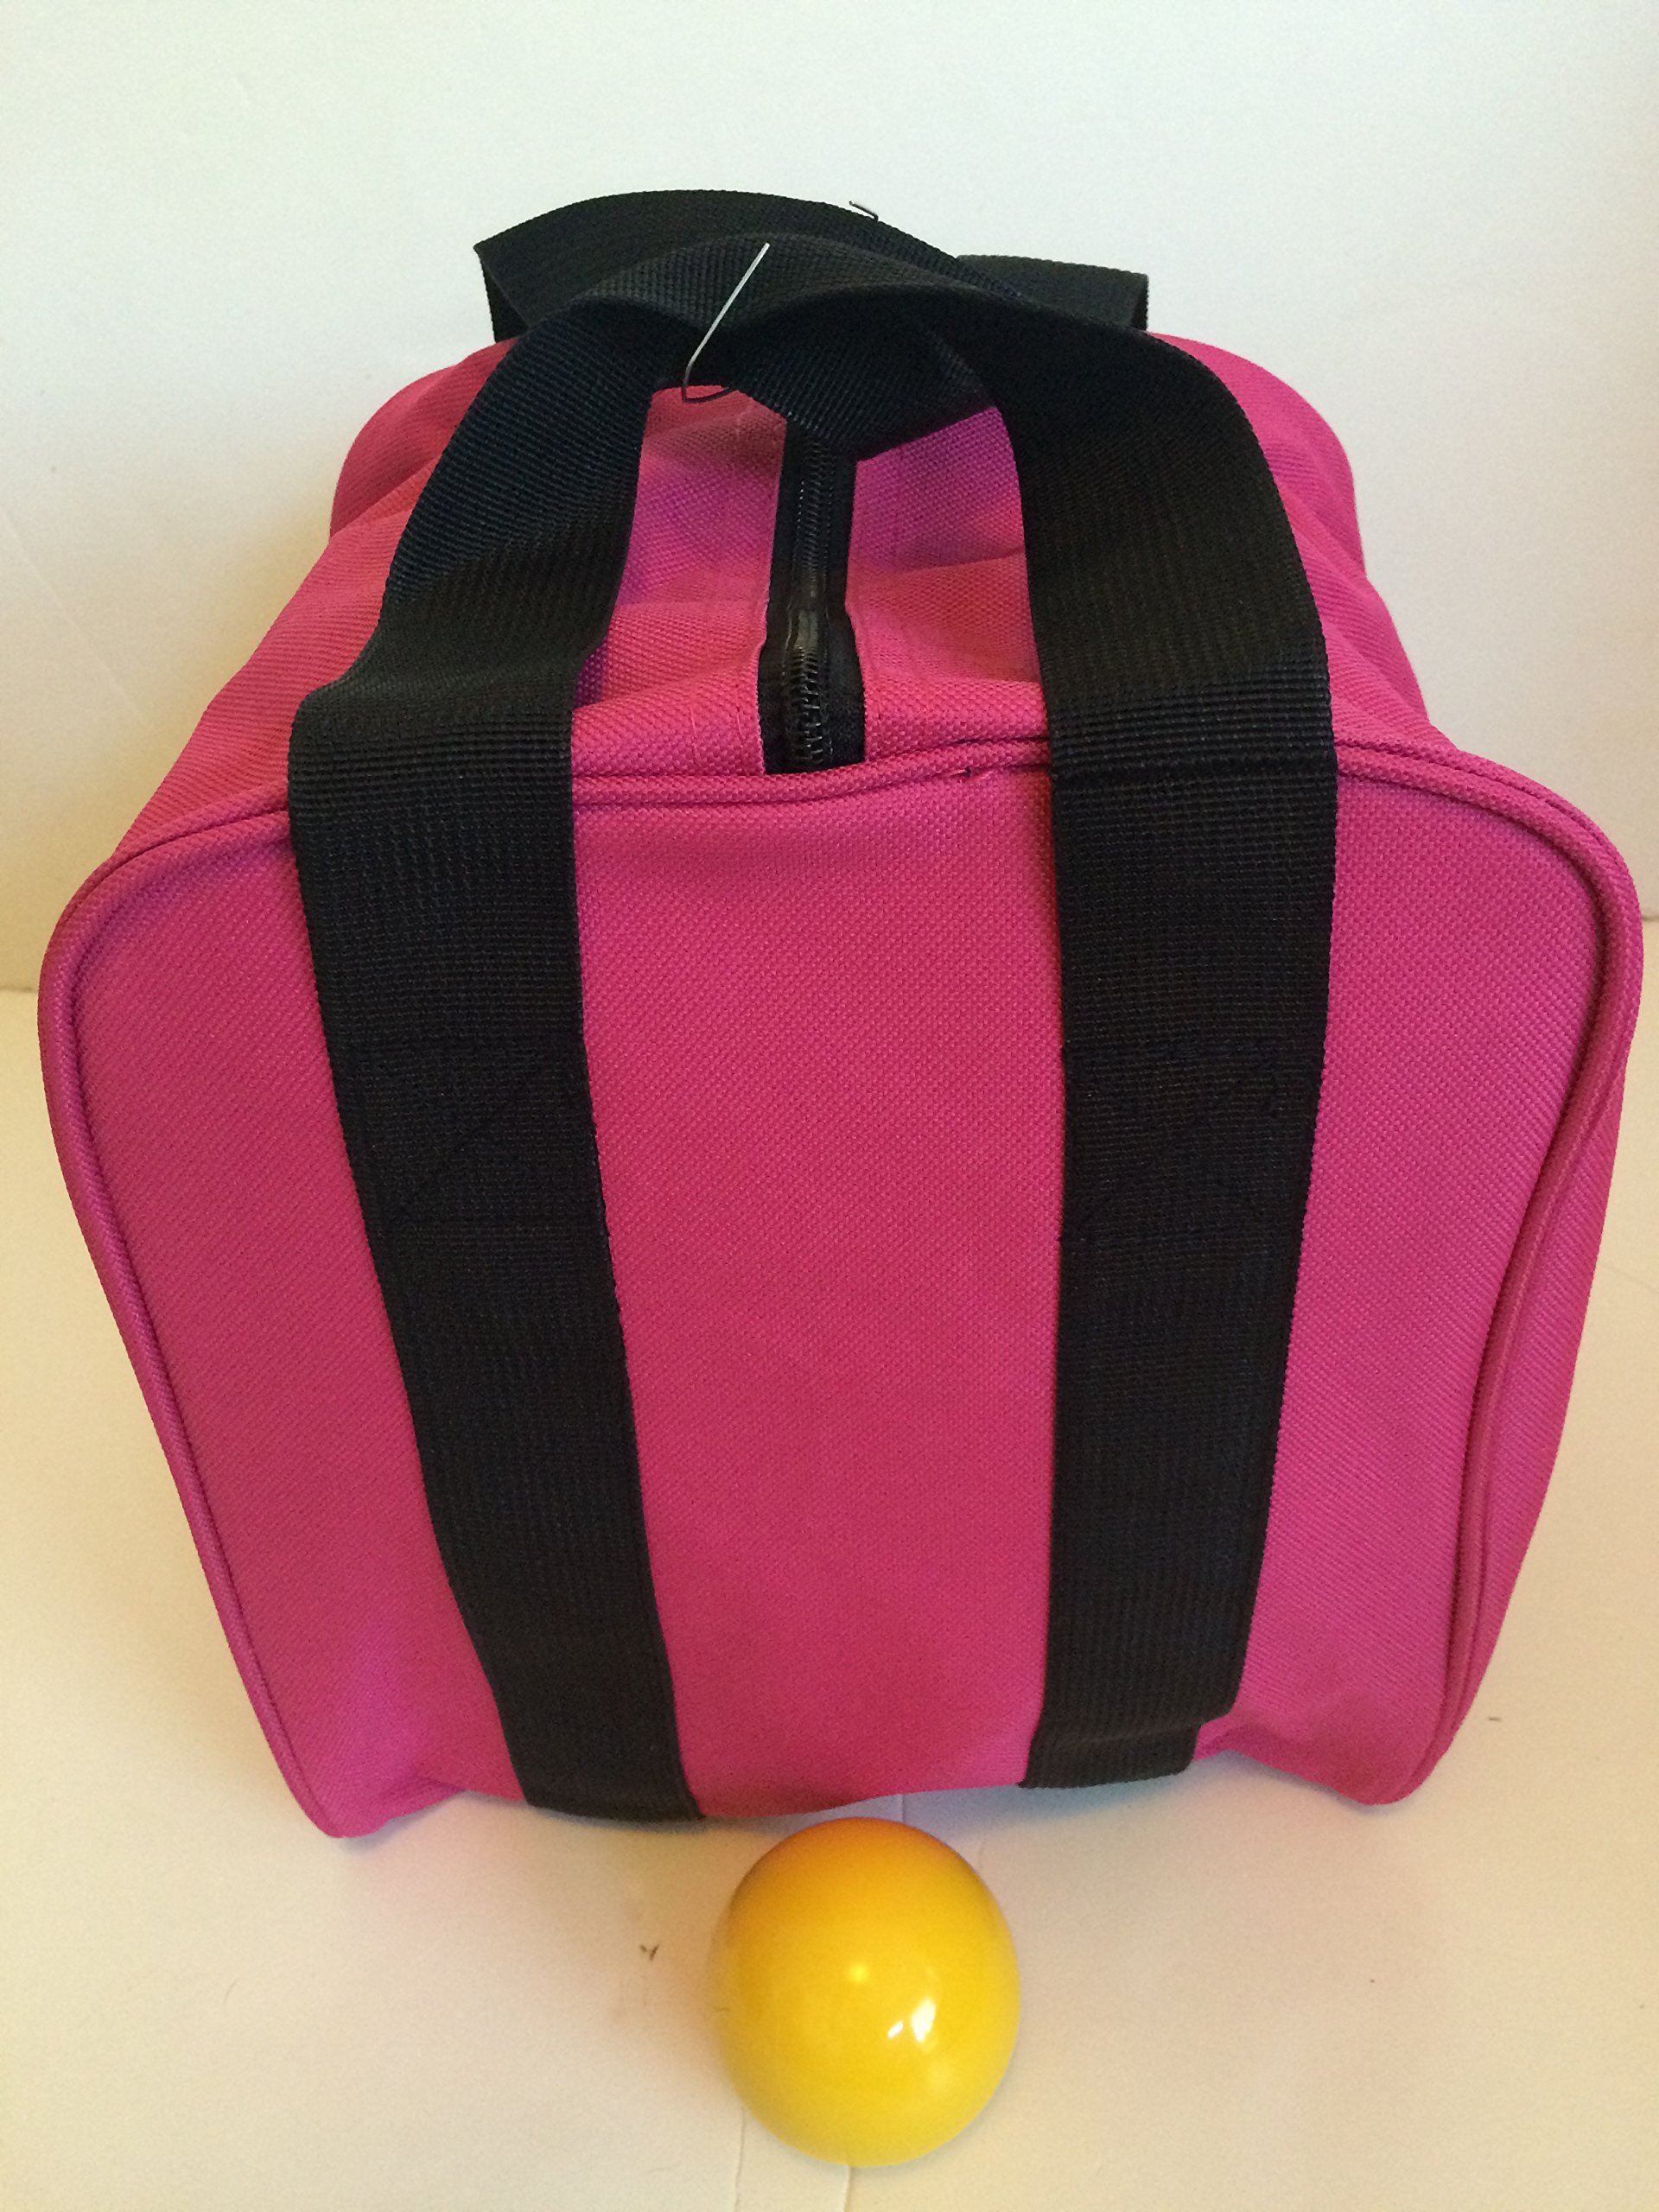 Unique Bocce Accessories Package - Extra Heavy Duty Nylon Bocce Bag (Pink with Black Handles) and yellow pallina